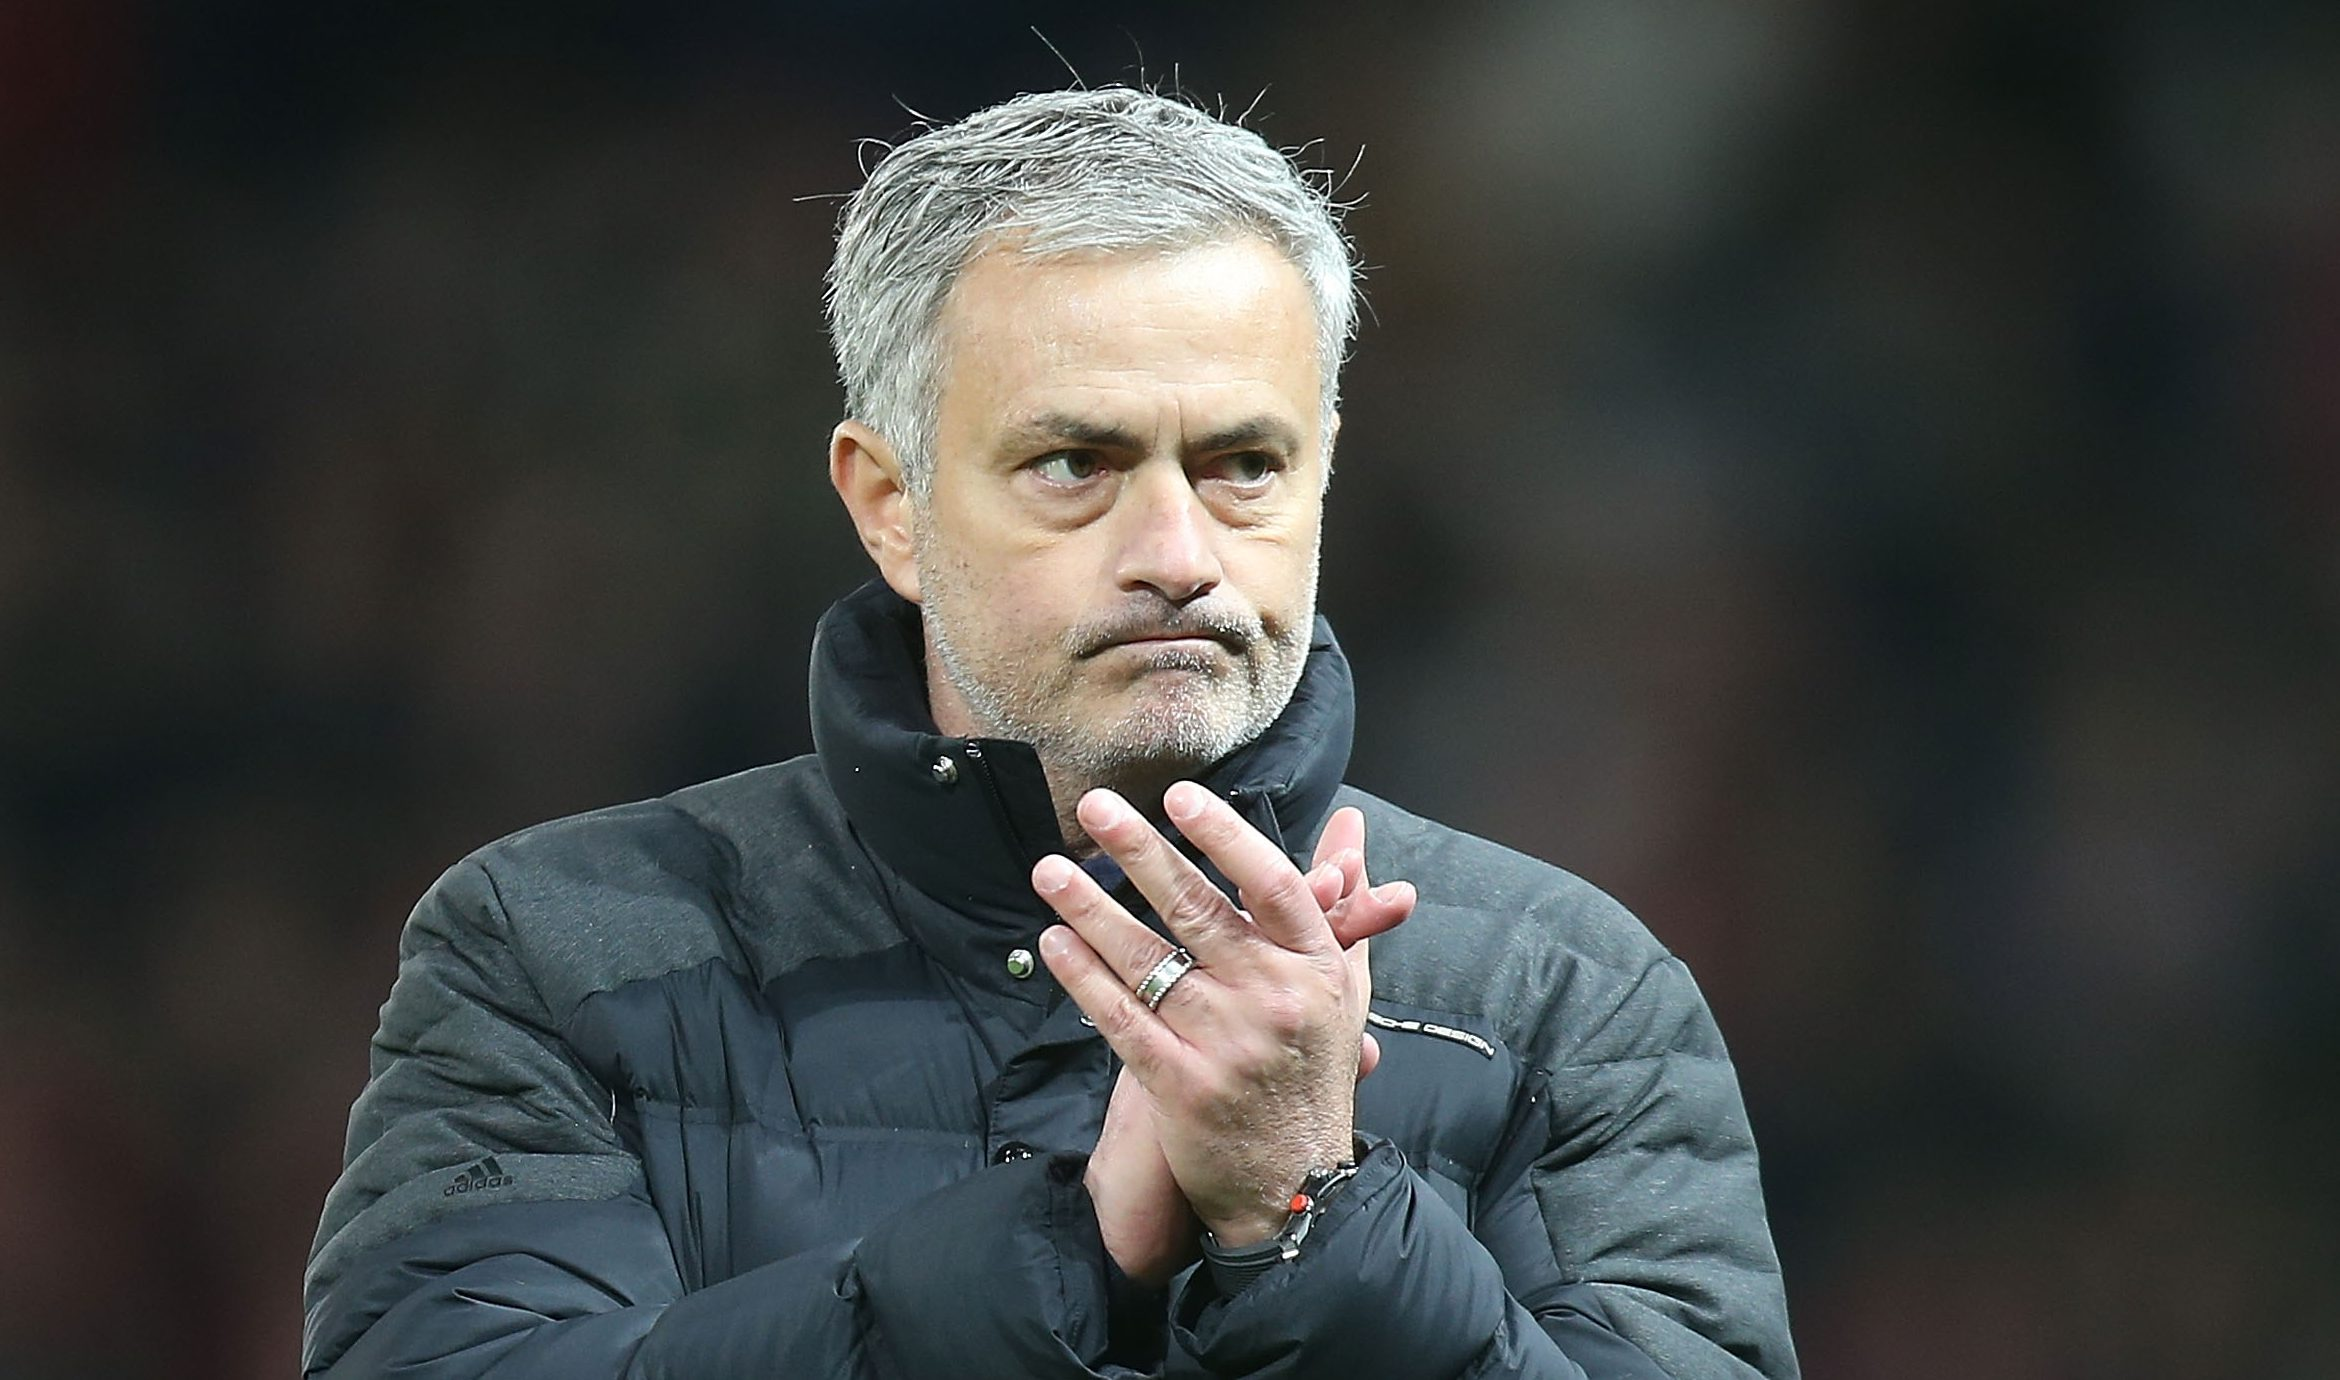 MANCHESTER, ENGLAND - DECEMBER 11: Manager Jose Mourinho of Manchester United applauds the fans after the Premier League match between Manchester United and Tottenham Hotspur at Old Trafford on December 11, 2016 in Manchester, England. (Photo by Matthew Peters/Man Utd via Getty Images)